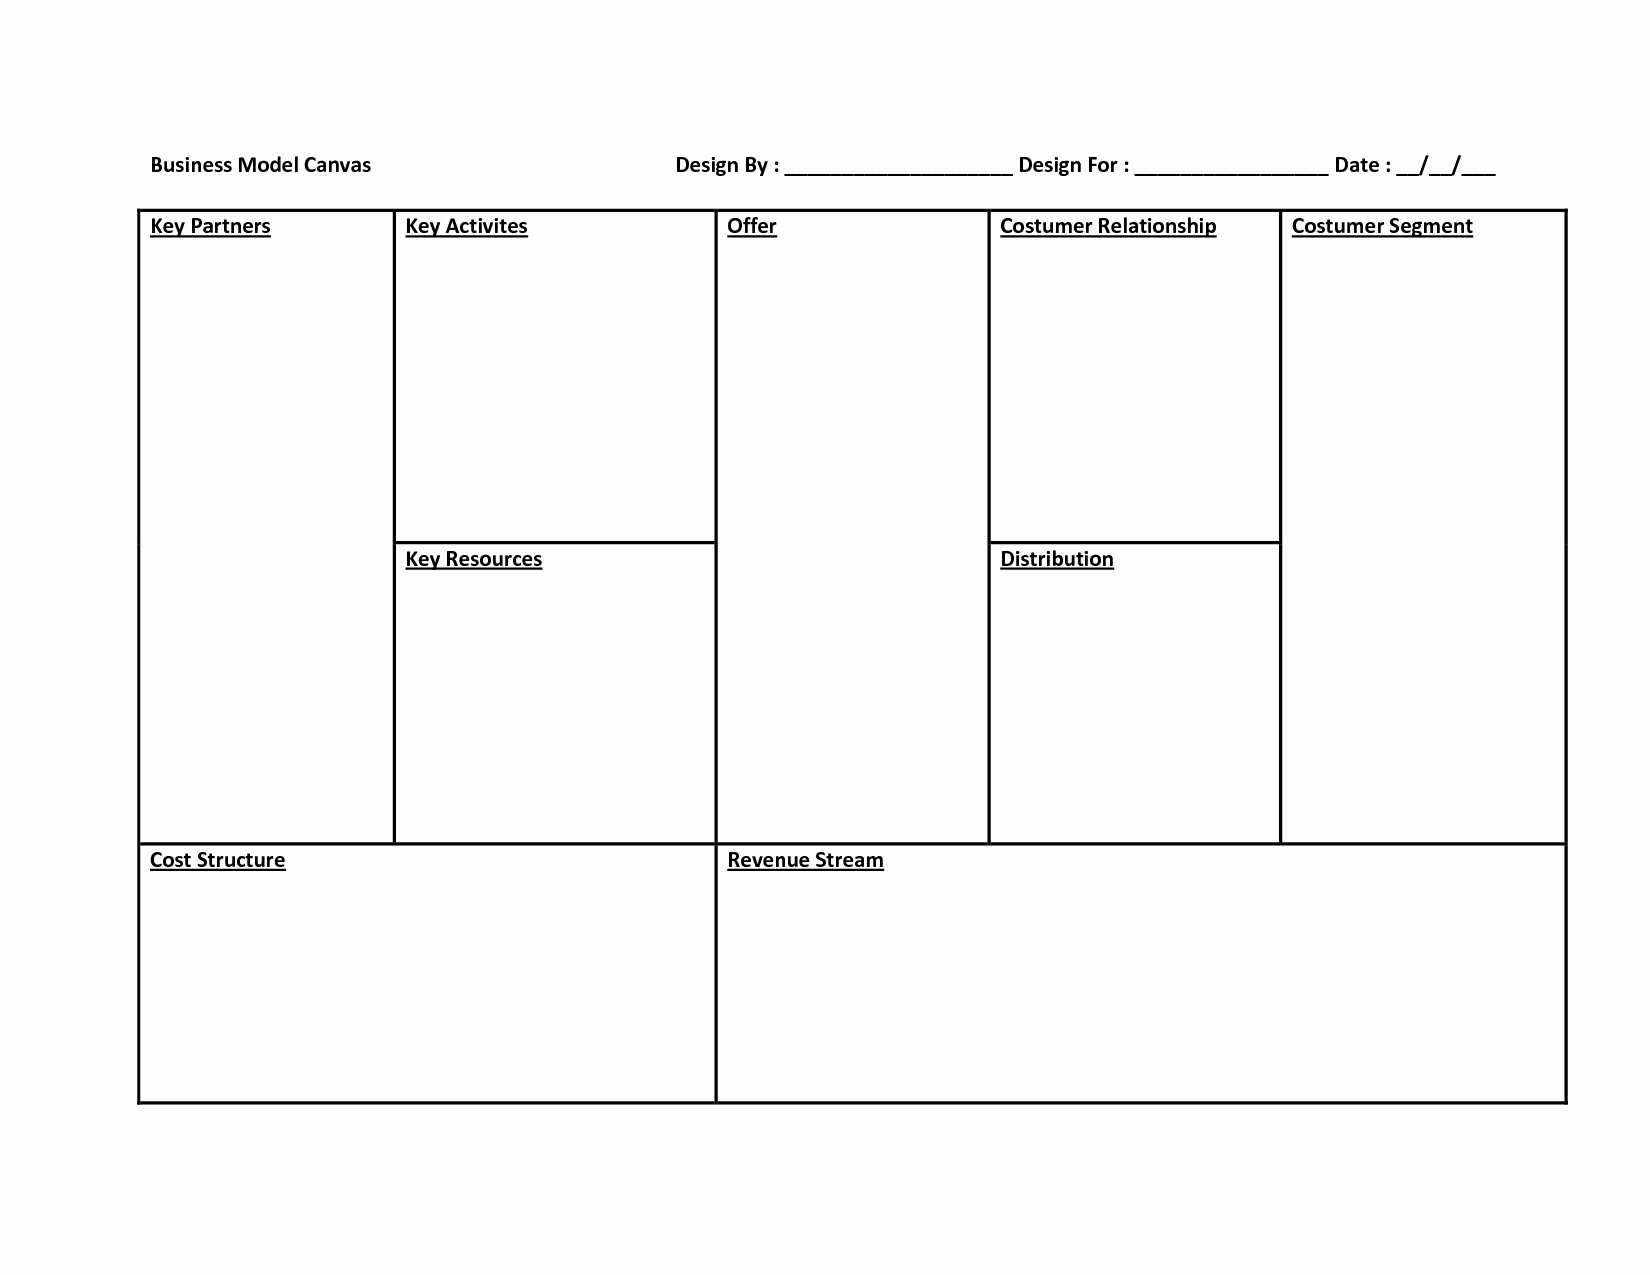 Business Model Canvas Template Word New Business Model Canvas Template Word Templates Data